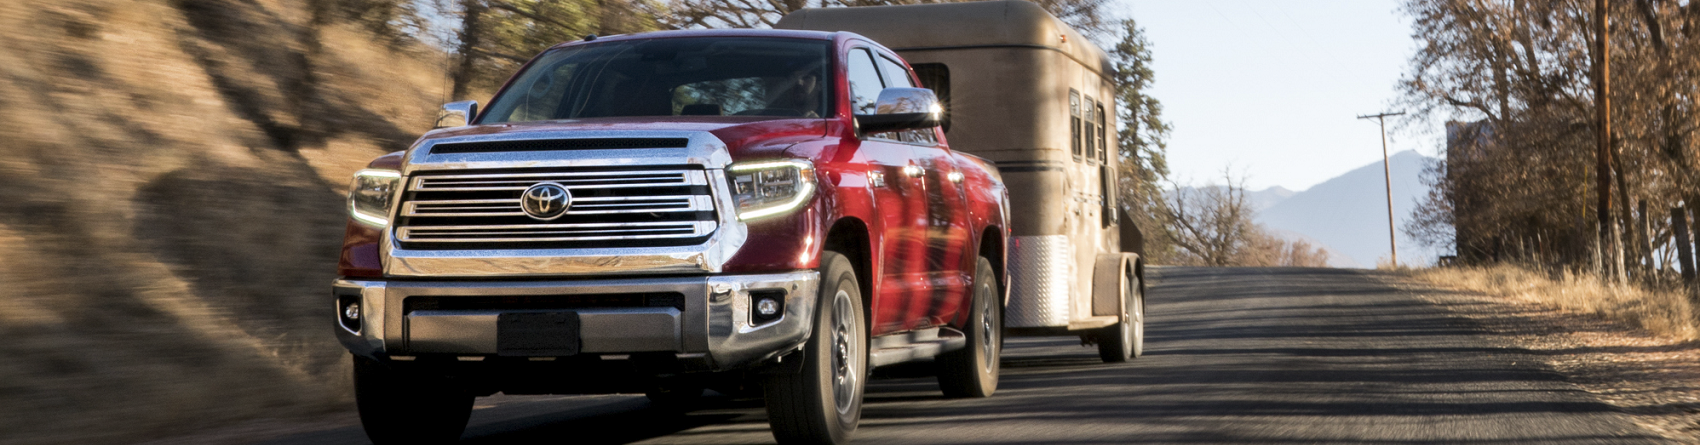 2019 Toyota Tundra Towing